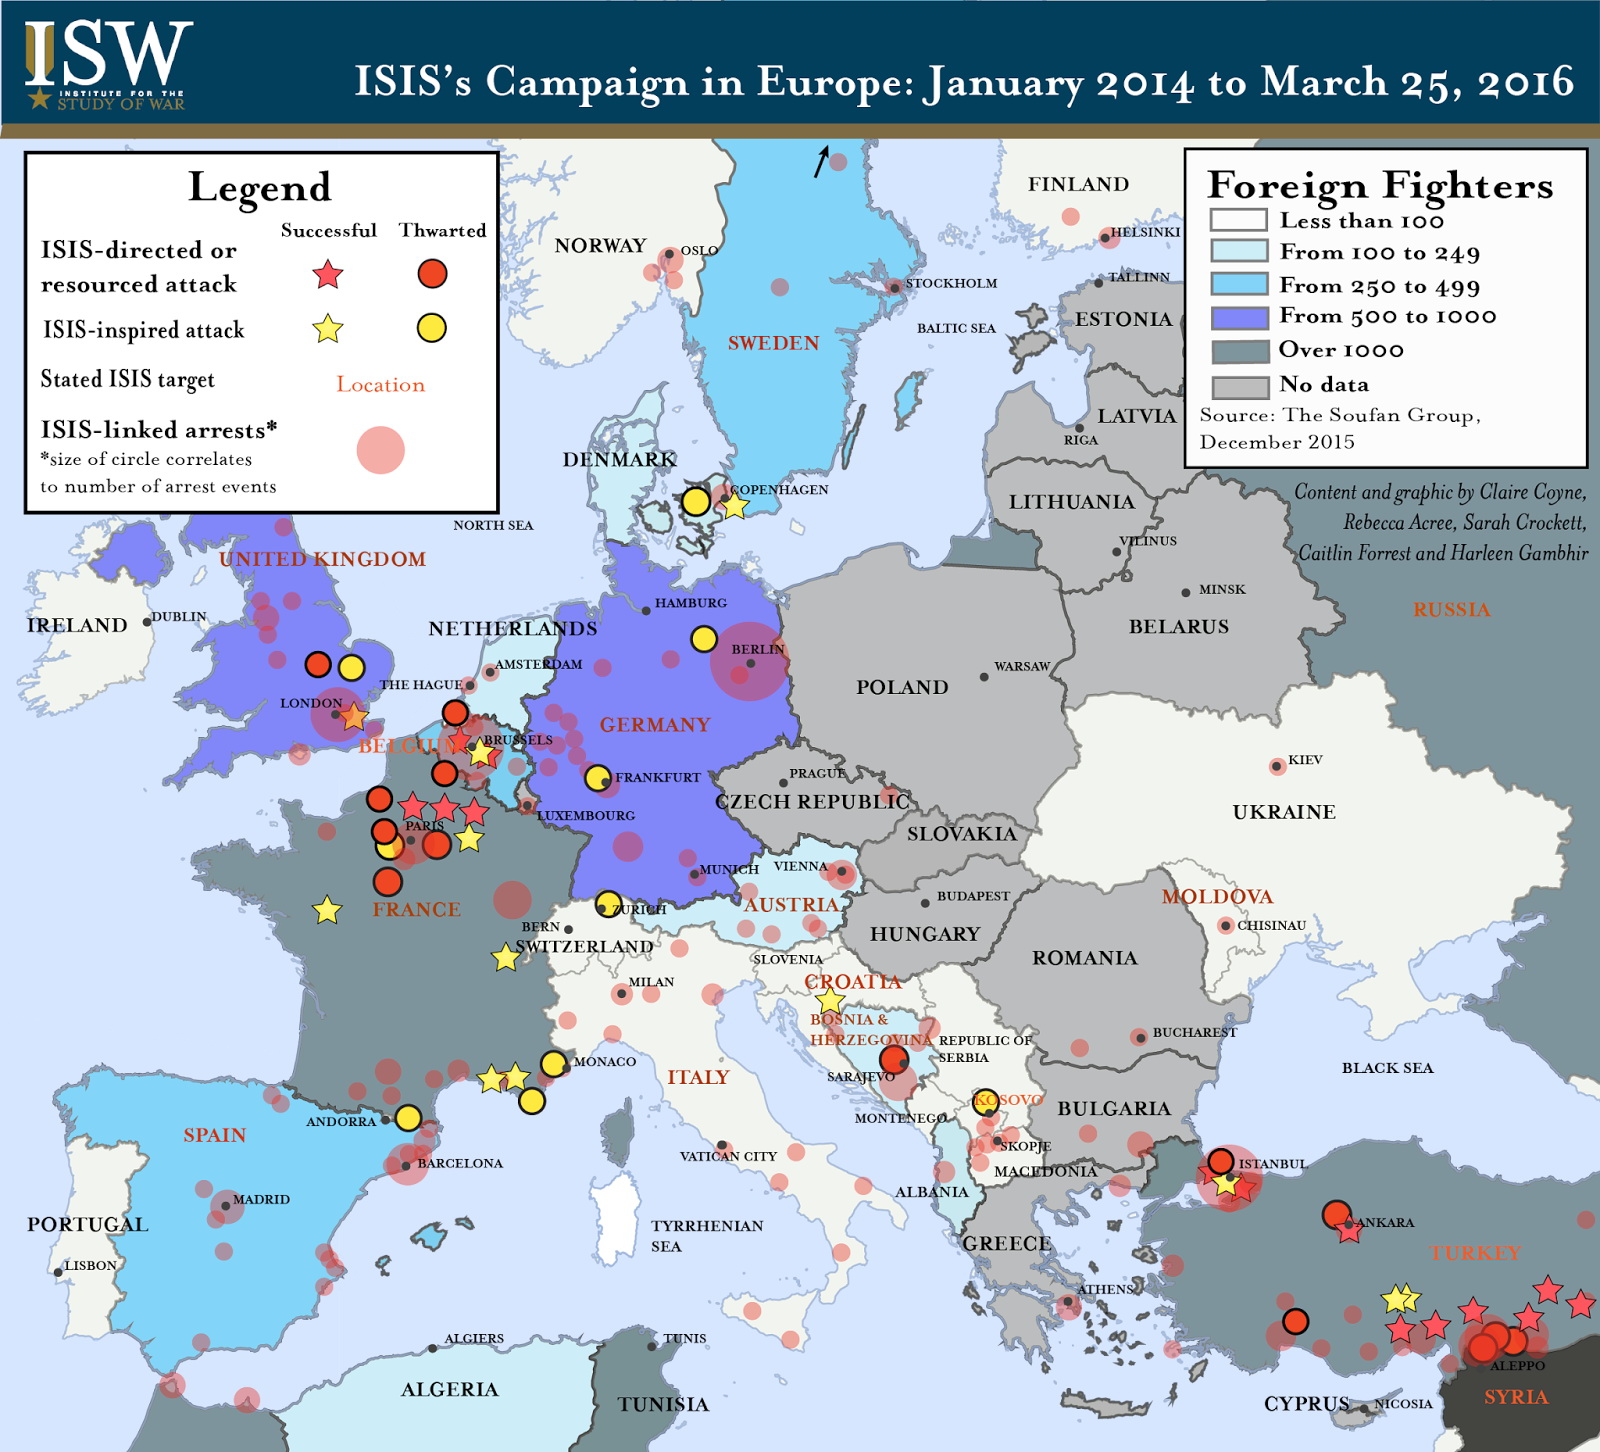 ISIS's Campaign in Europe (January 2014 - March 2016)